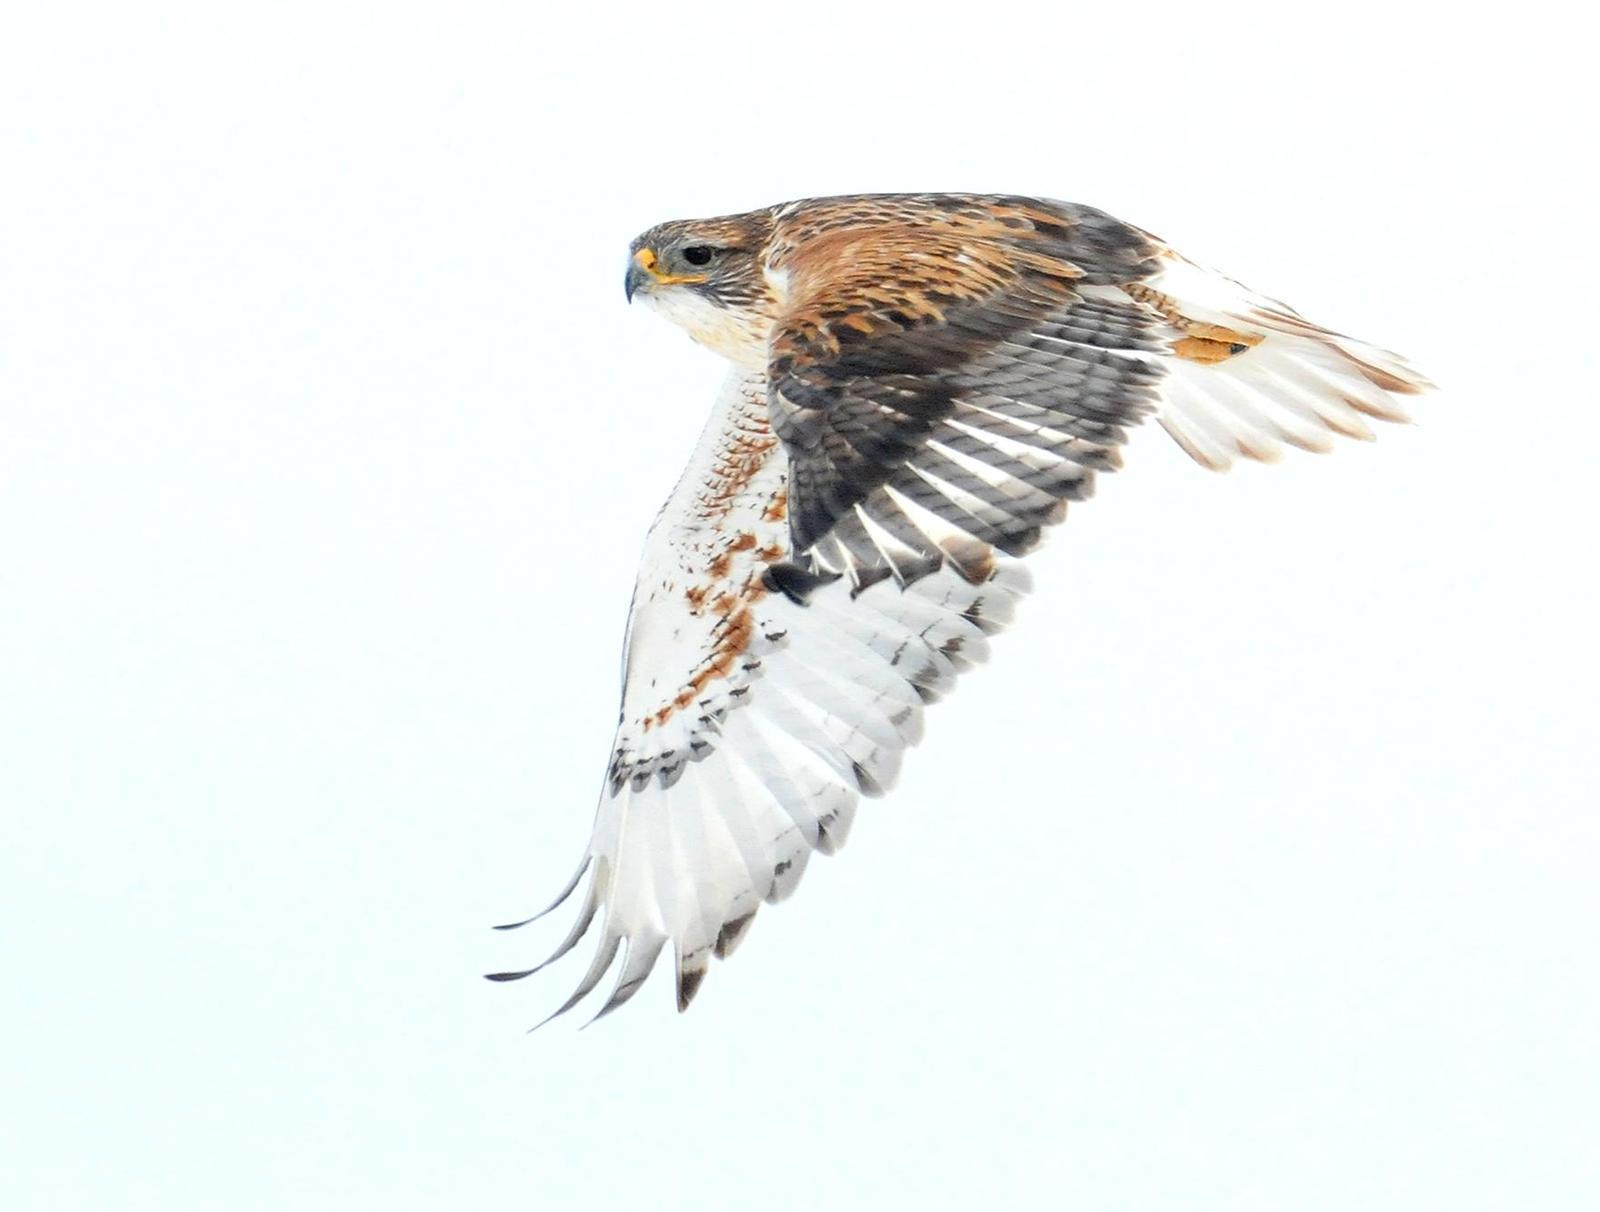 Ferruginous Hawk Photo by Steven Mlodinow